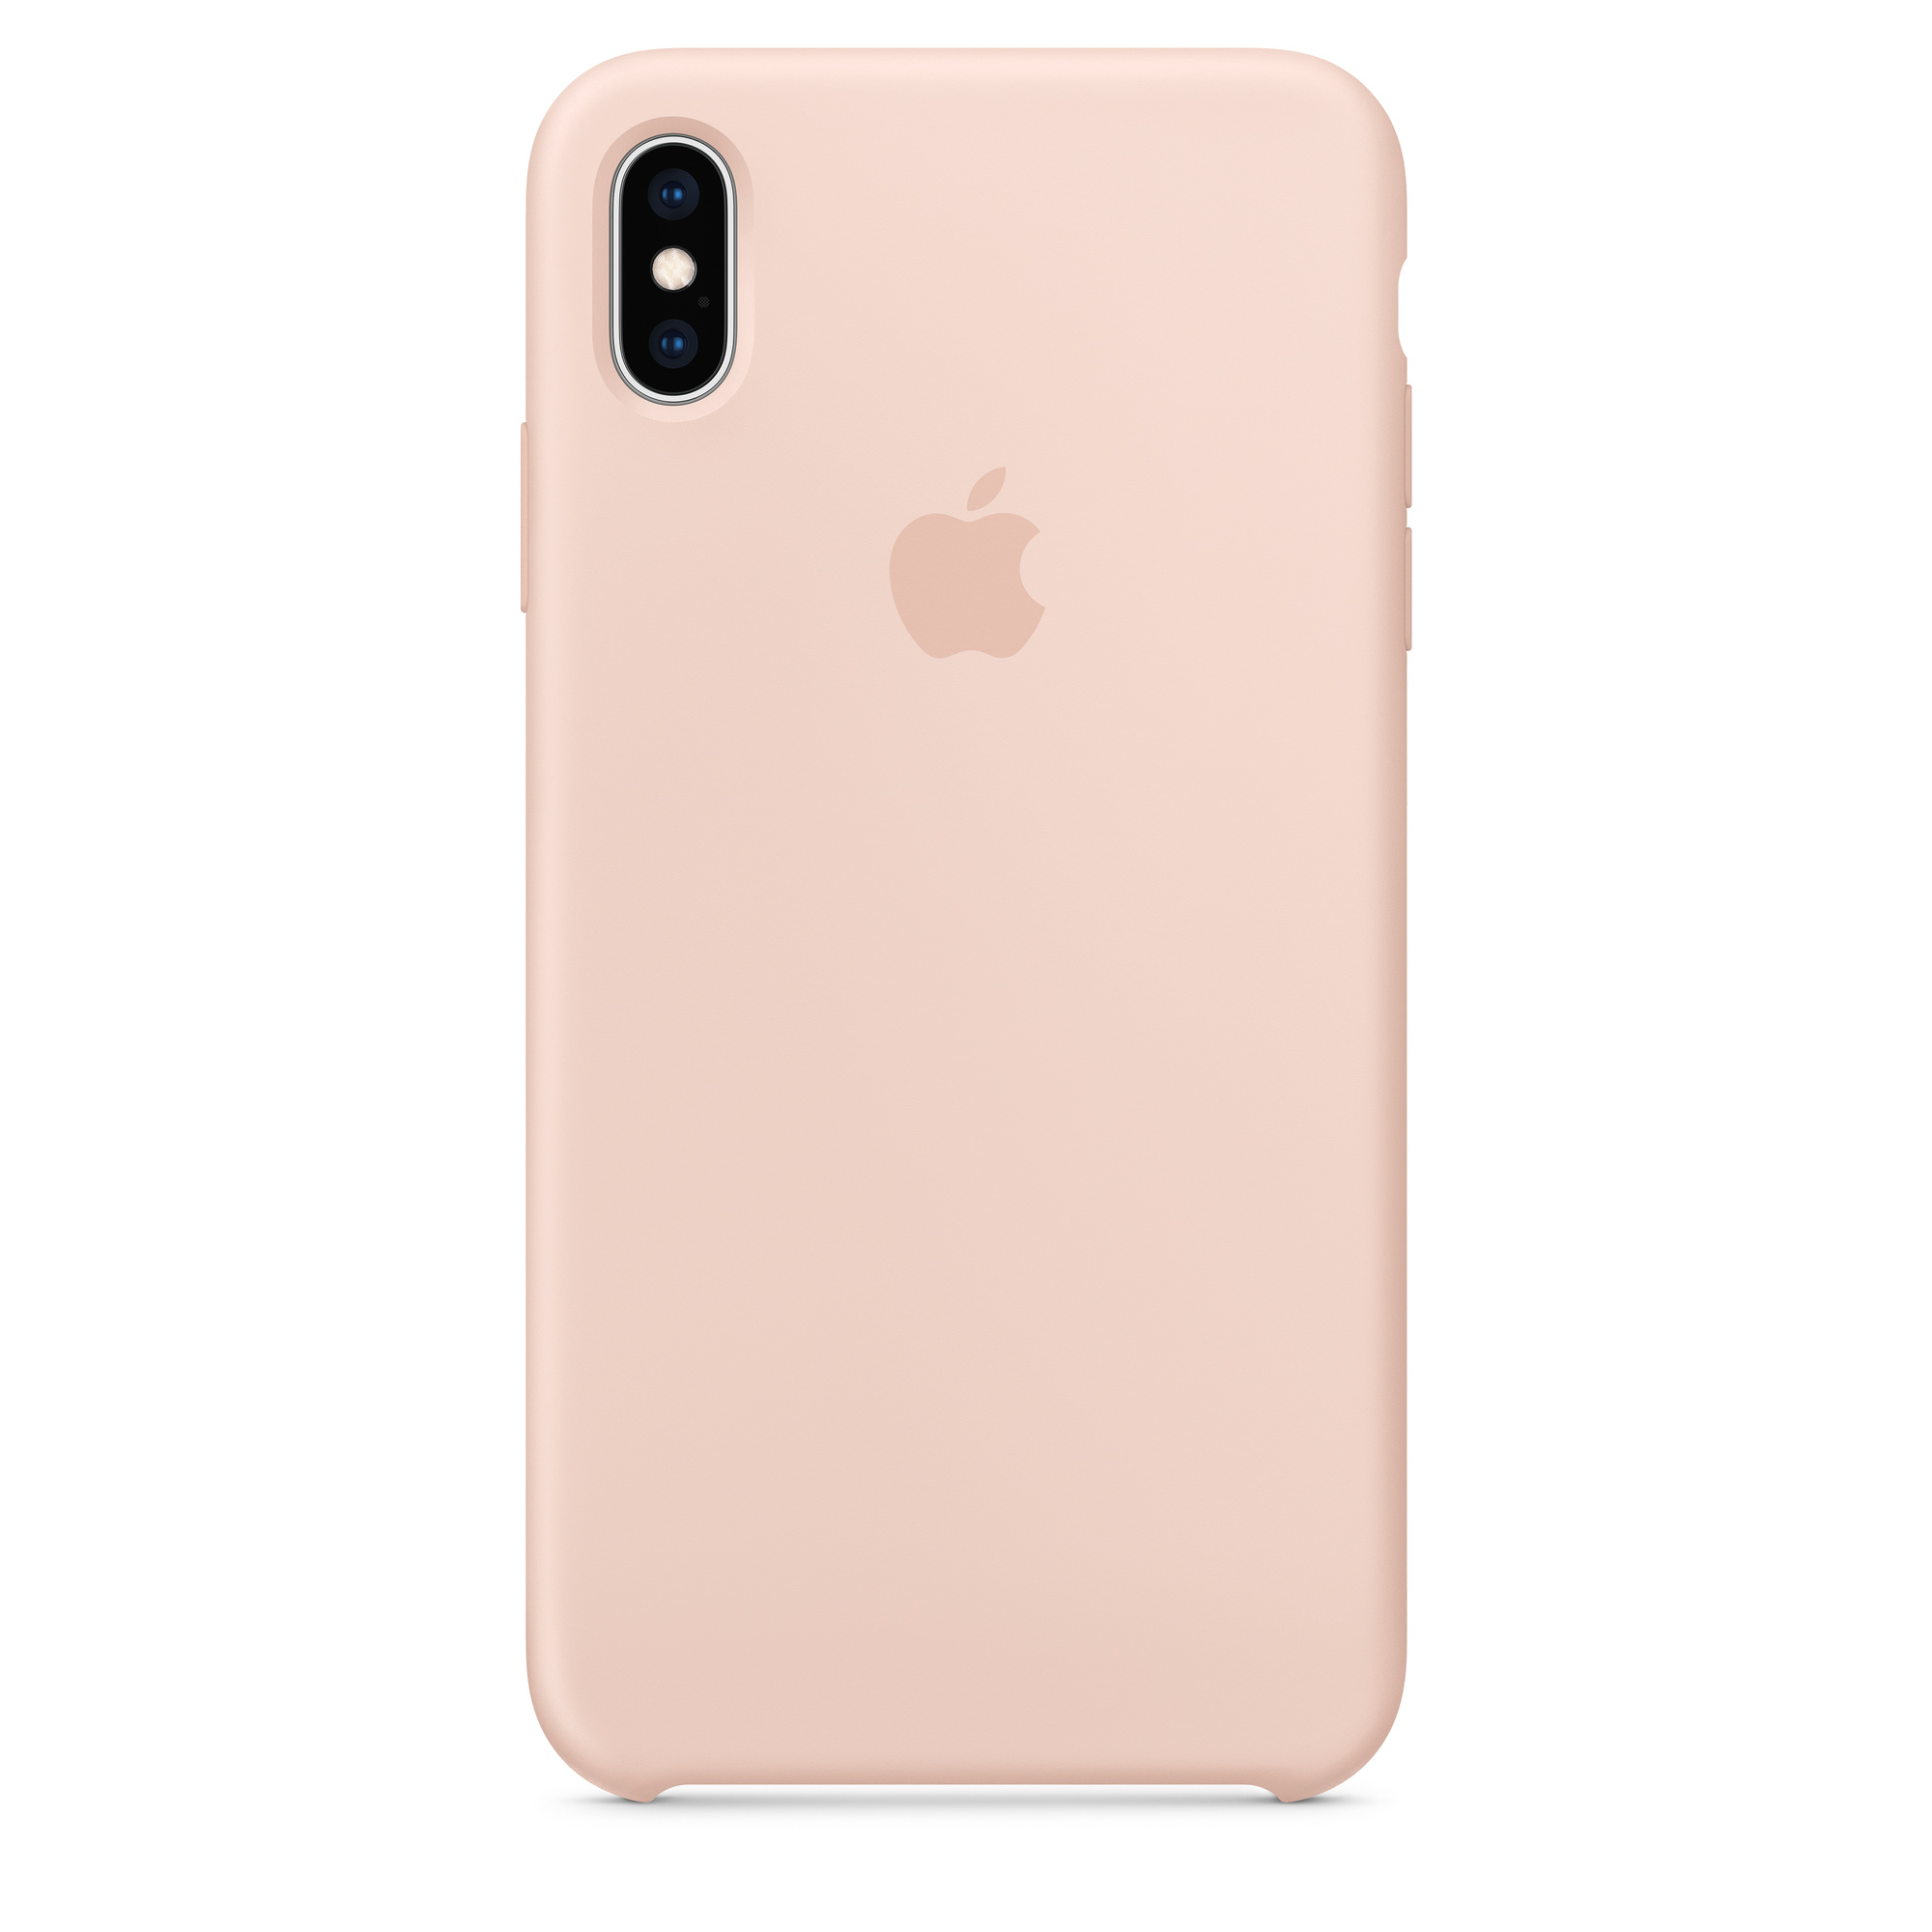 size 40 2cd19 2b4f6 iPhone XS Max Silicone Case - Pink Sand